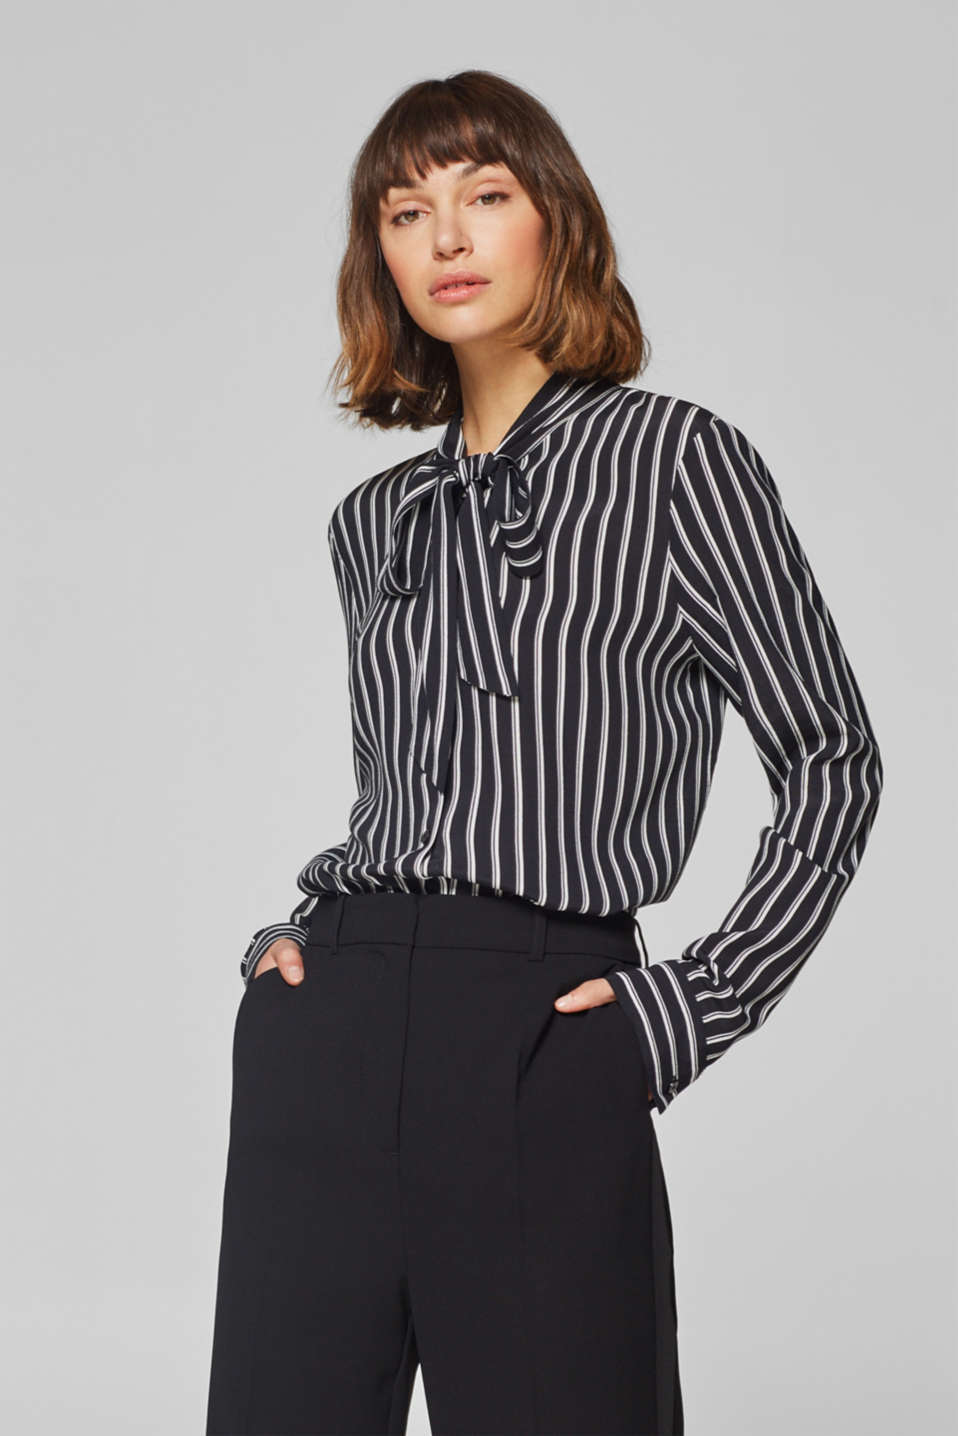 Esprit - Flowing blouse with stripes and a pussycat bow